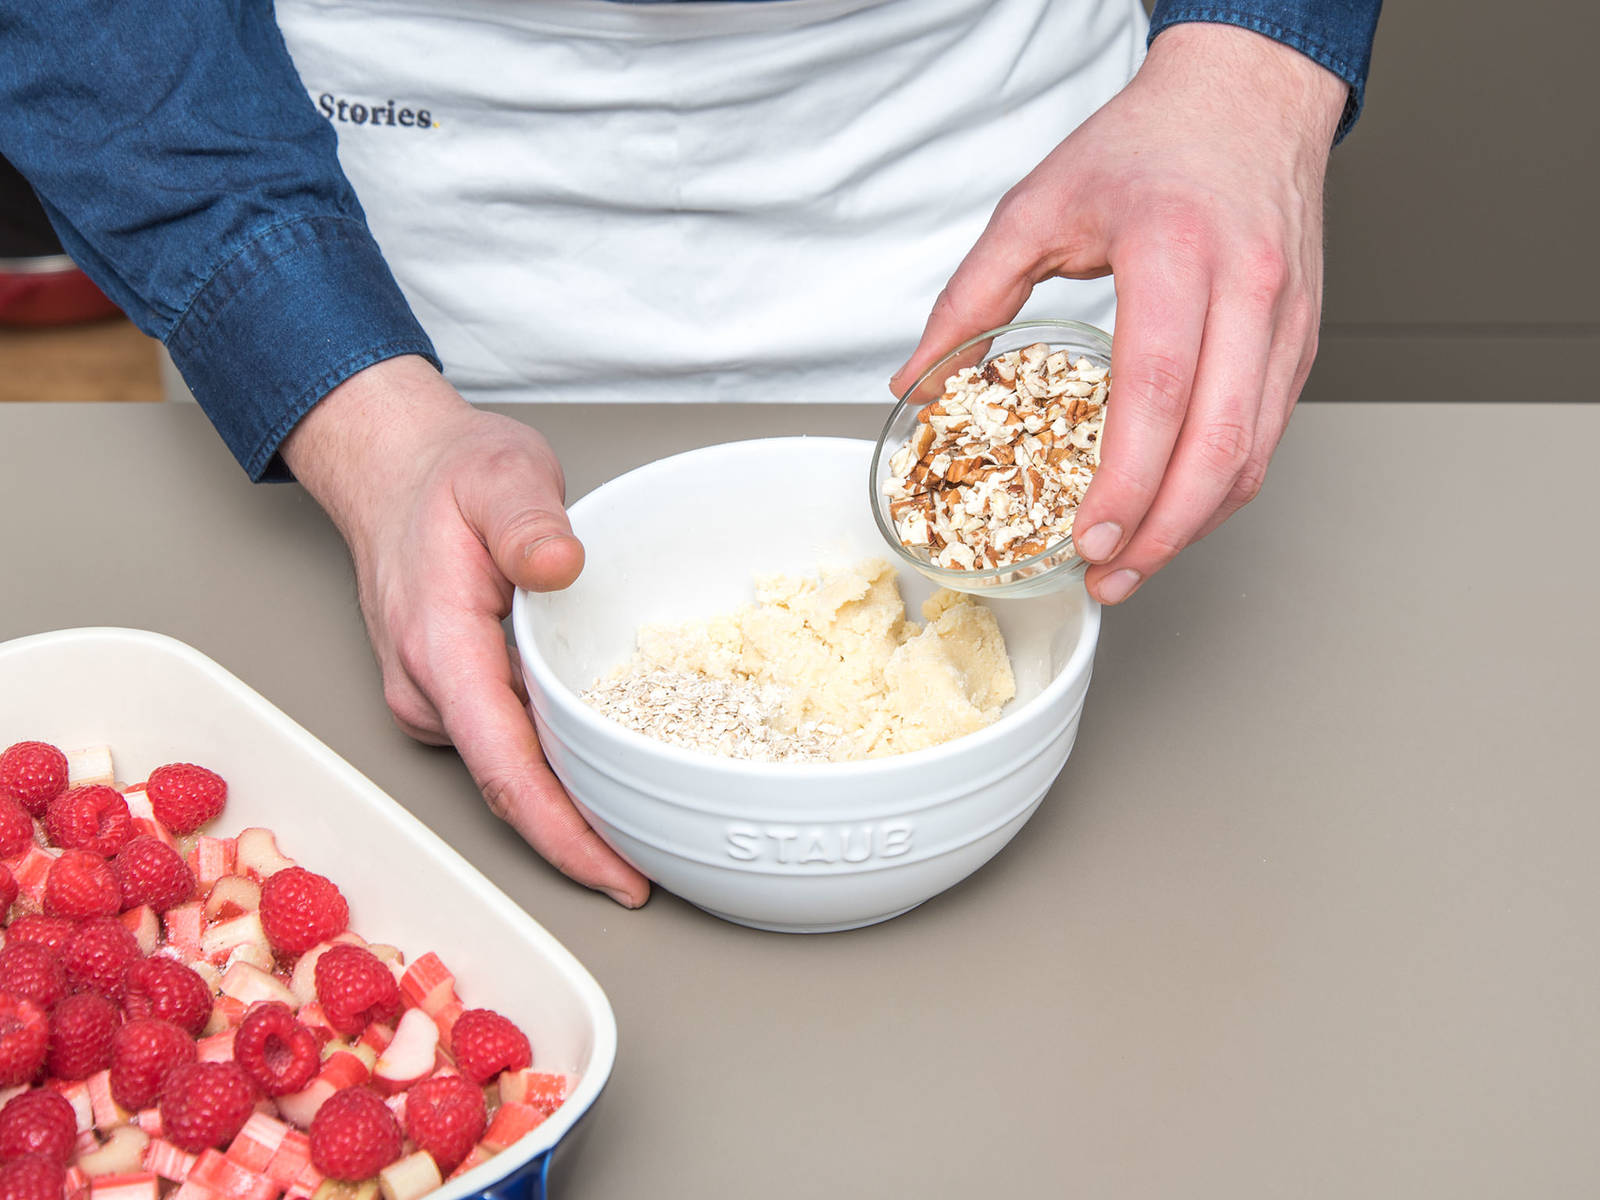 Preheat the oven to 190°C/375°C top and bottom heat. Dice the butter and combine with the remaining sugar and the flour with your fingertips to a crumbly dough. Coarsely chop the pecans and mix with the rolled oats and crumble dough.